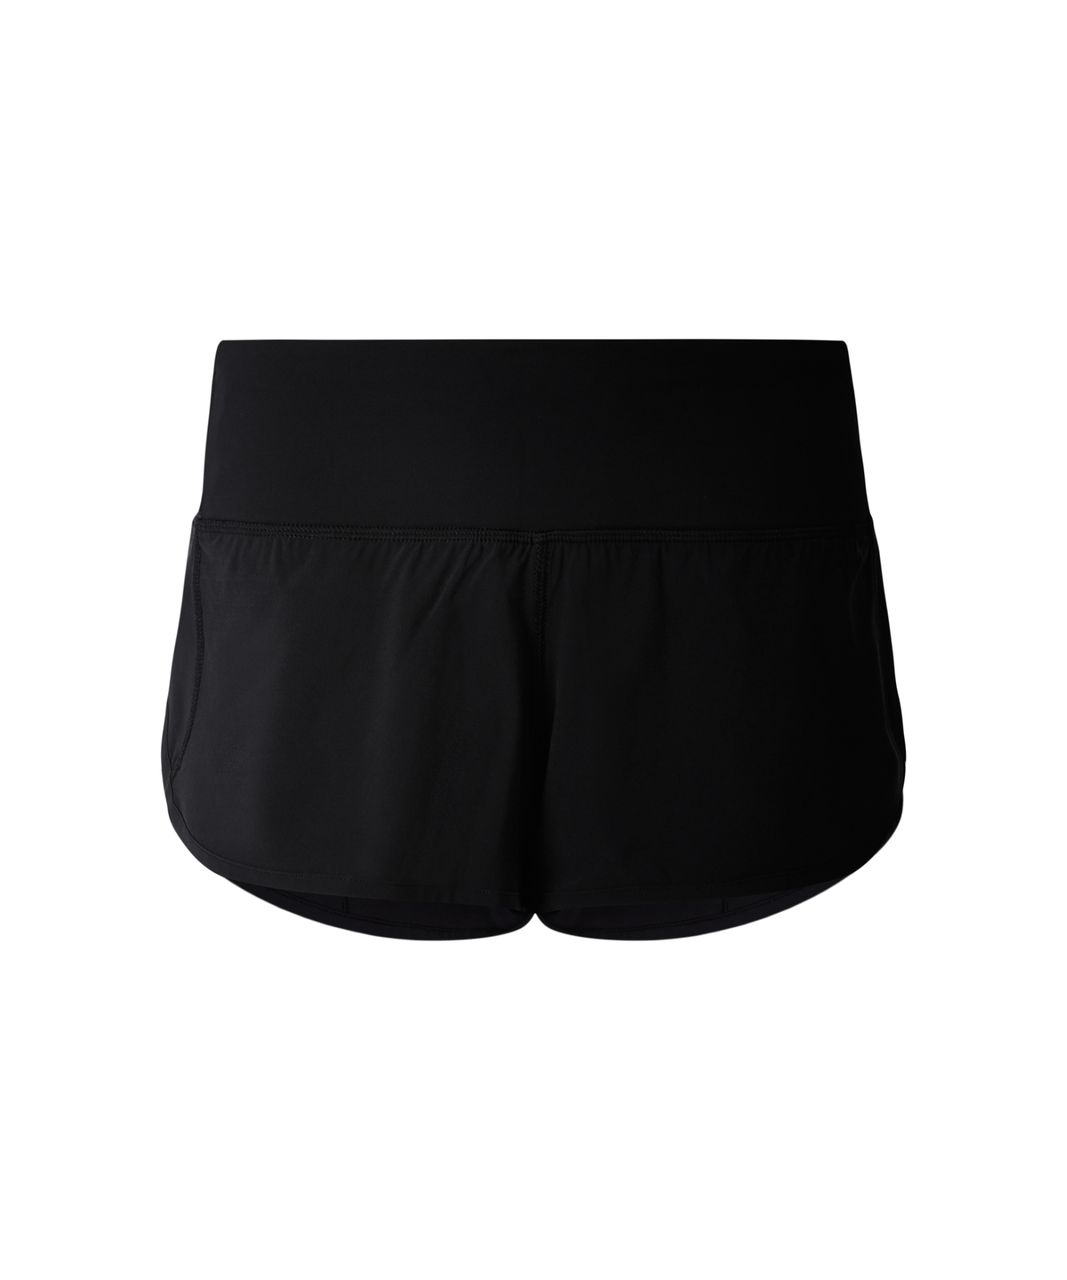 "Lululemon Run: Speed Short *Block-It Pocket 2.5"" - Black"